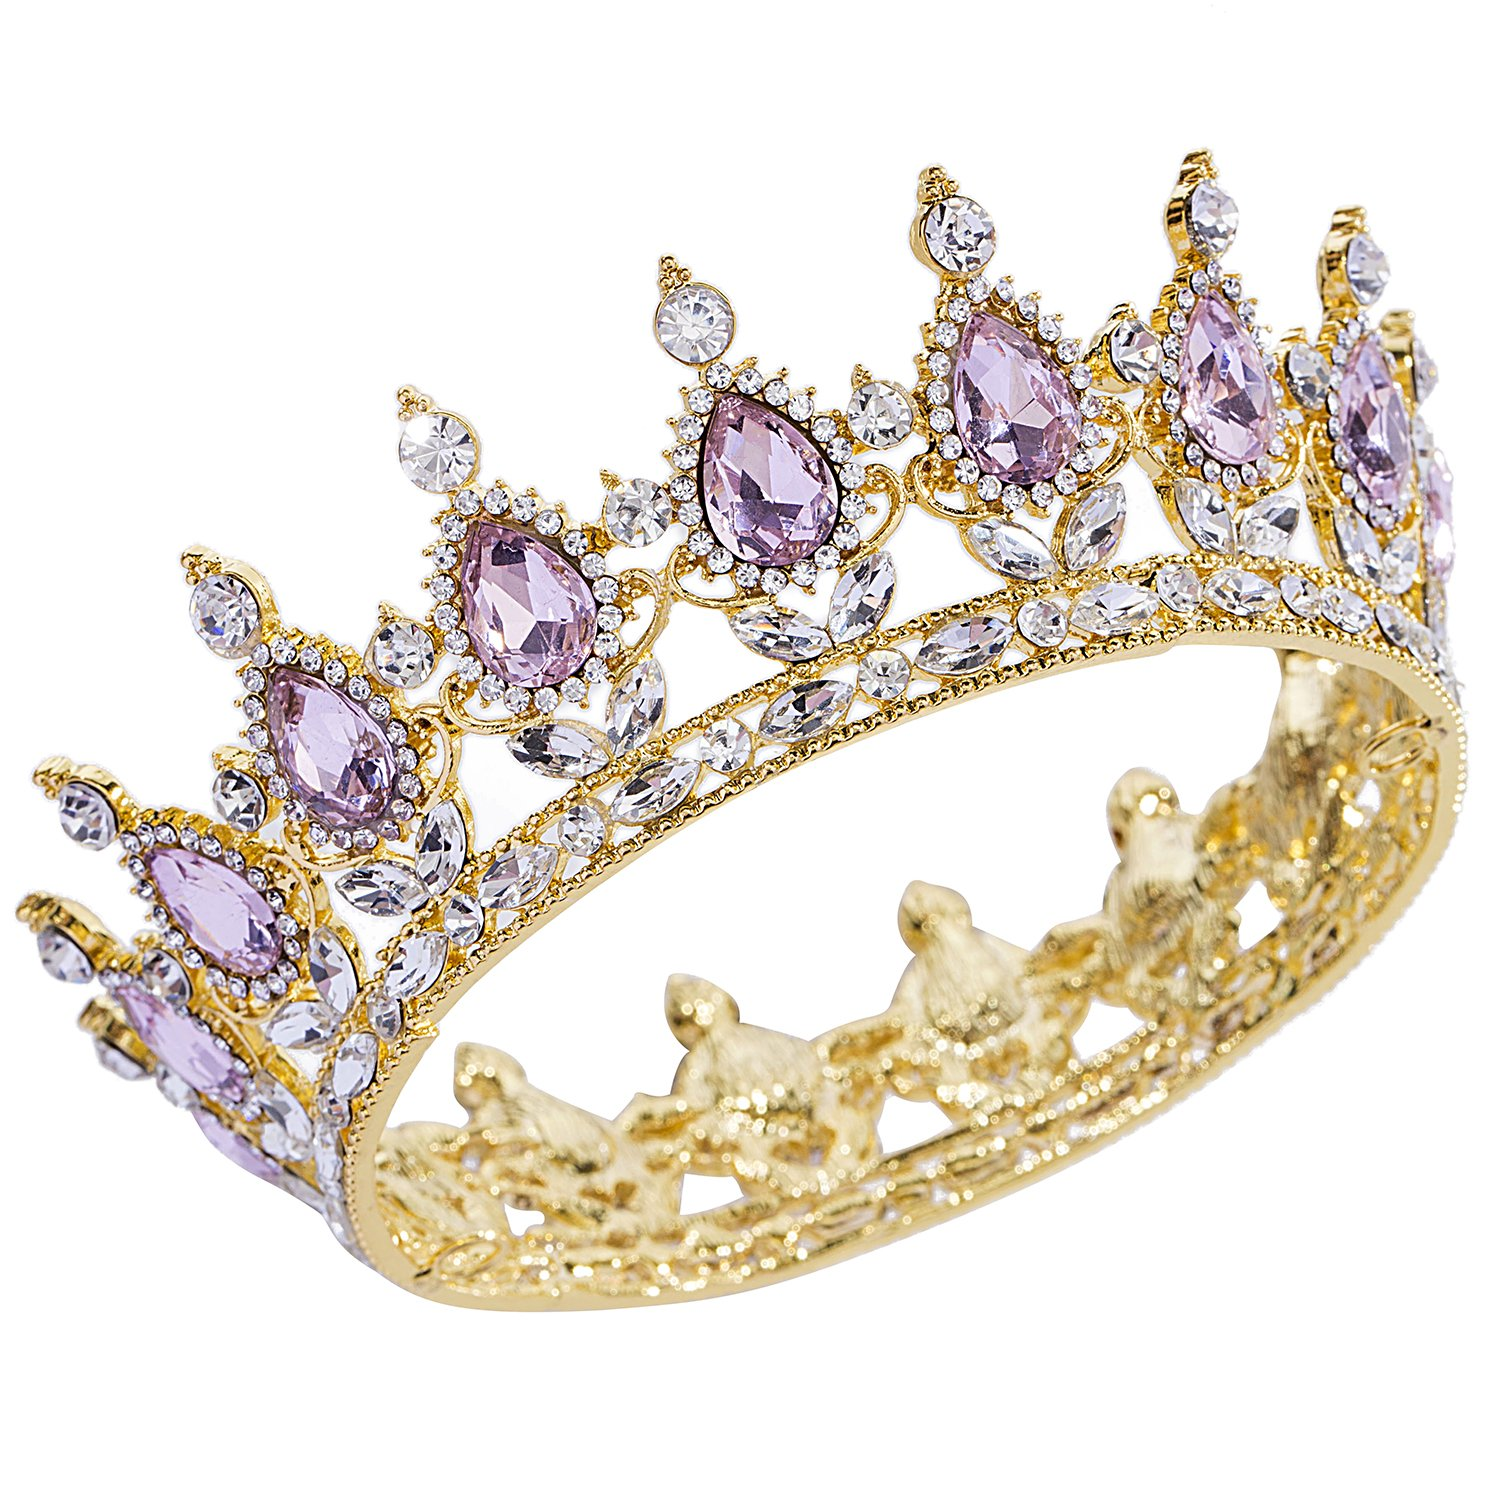 CamingHG Rhinestone Cake Topper Crown Fancy Party Cake Decoration Princess And Prince Headpiece (Gold-pink)